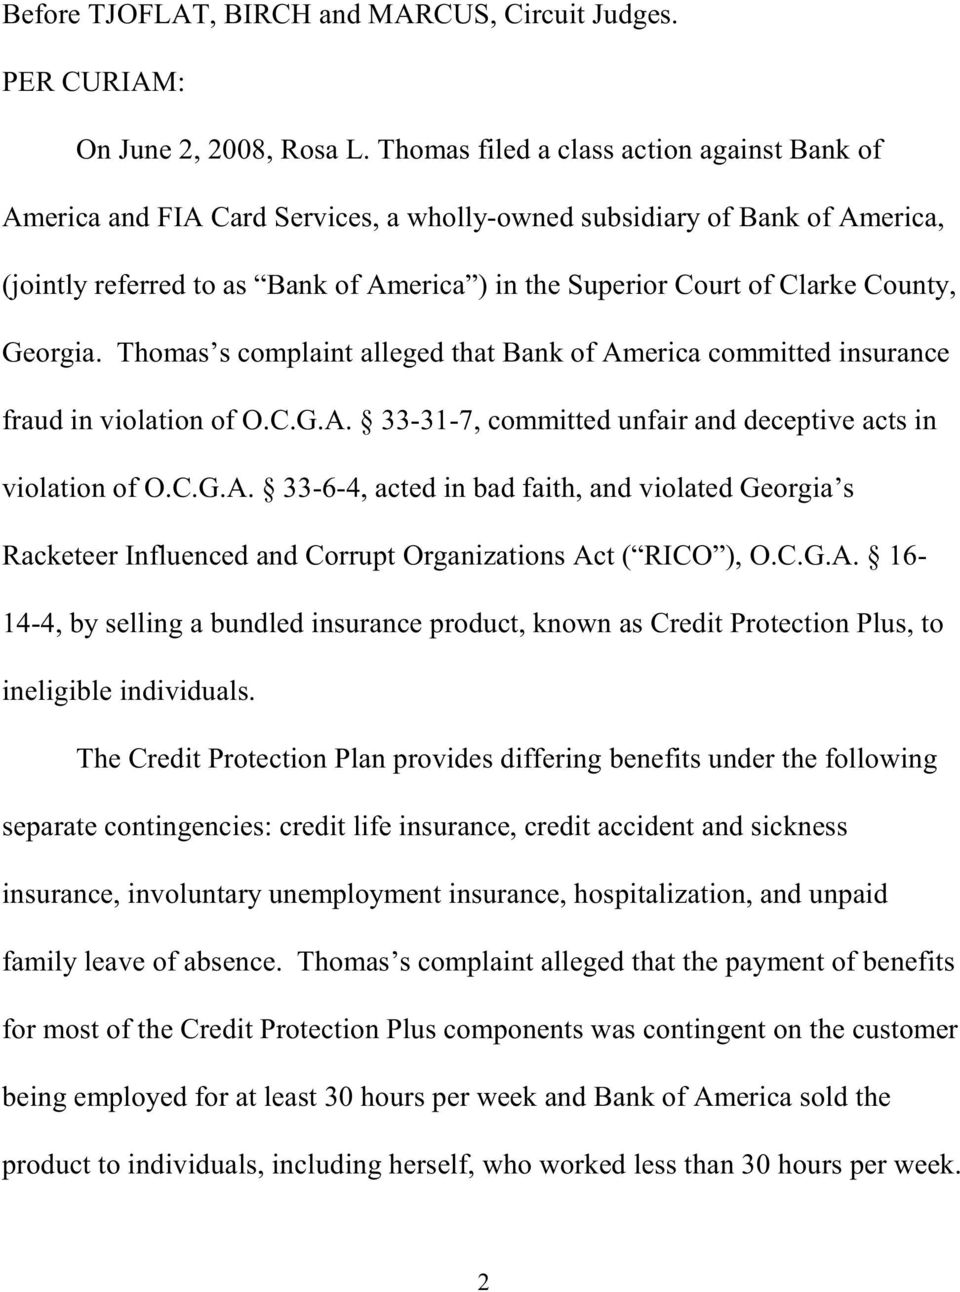 County, Georgia. Thomas s complaint alleged that Bank of America committed insurance fraud in violation of O.C.G.A. 33-31-7, committed unfair and deceptive acts in violation of O.C.G.A. 33-6-4, acted in bad faith, and violated Georgia s Racketeer Influenced and Corrupt Organizations Act ( RICO ), O.